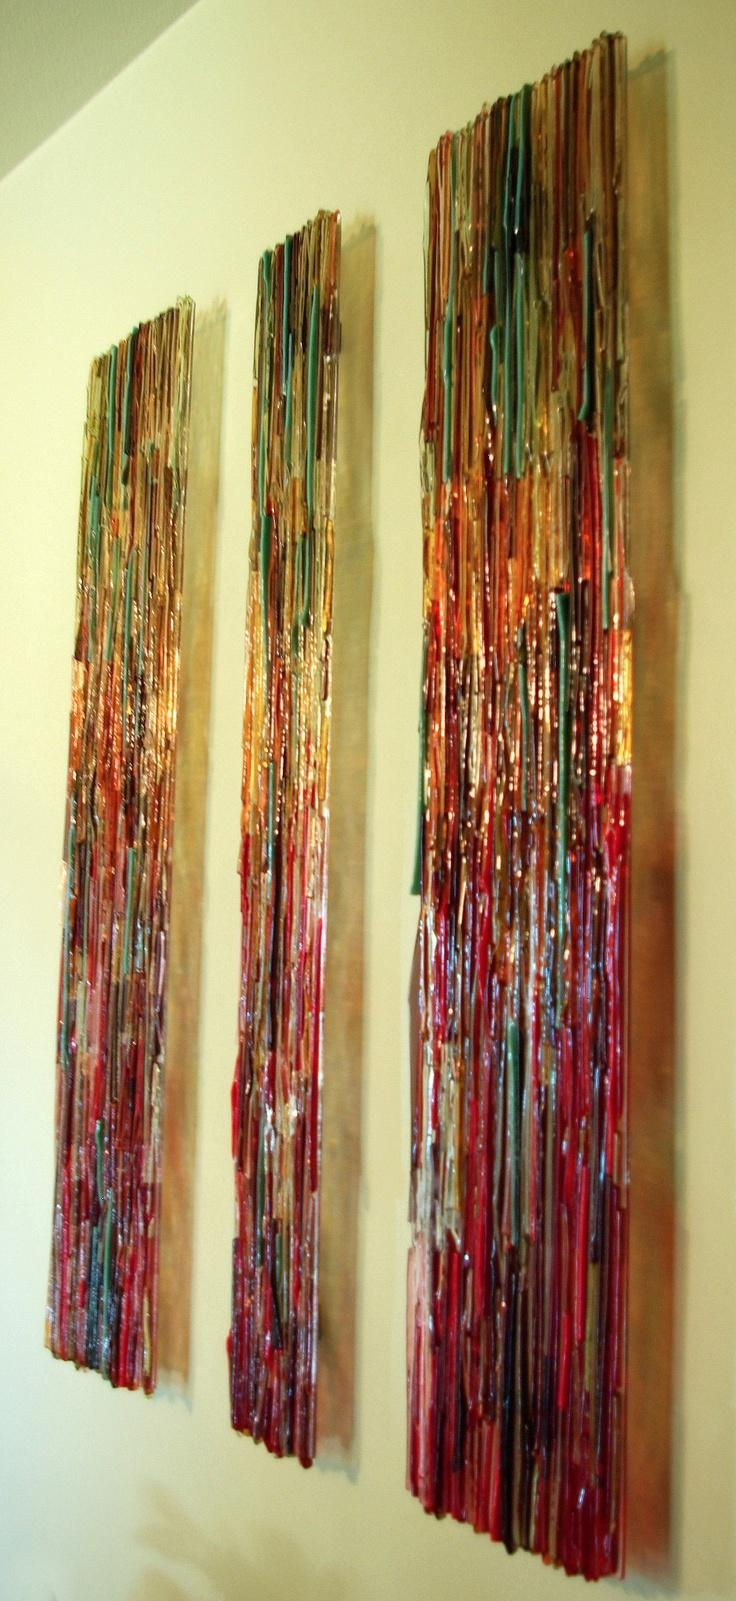 25+ Best Glass Wall Art Ideas On Pinterest | Glass Art, Fused throughout Fused Glass Wall Art